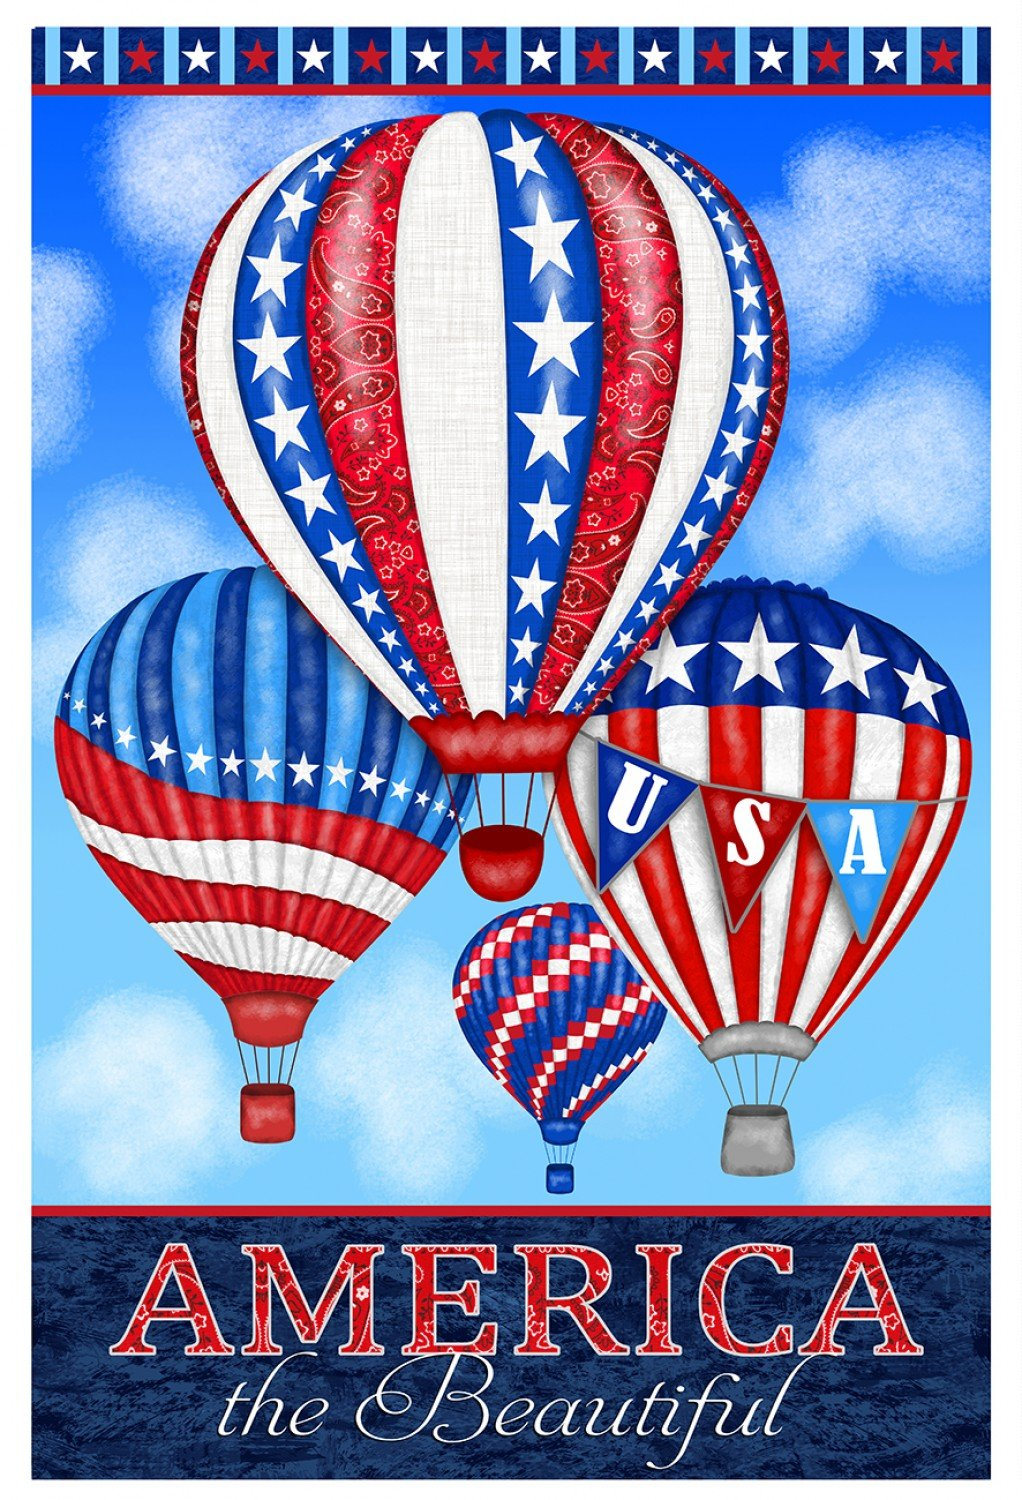 America the Beautiful panel by Studio E - only $8 for the pretty piece of art!